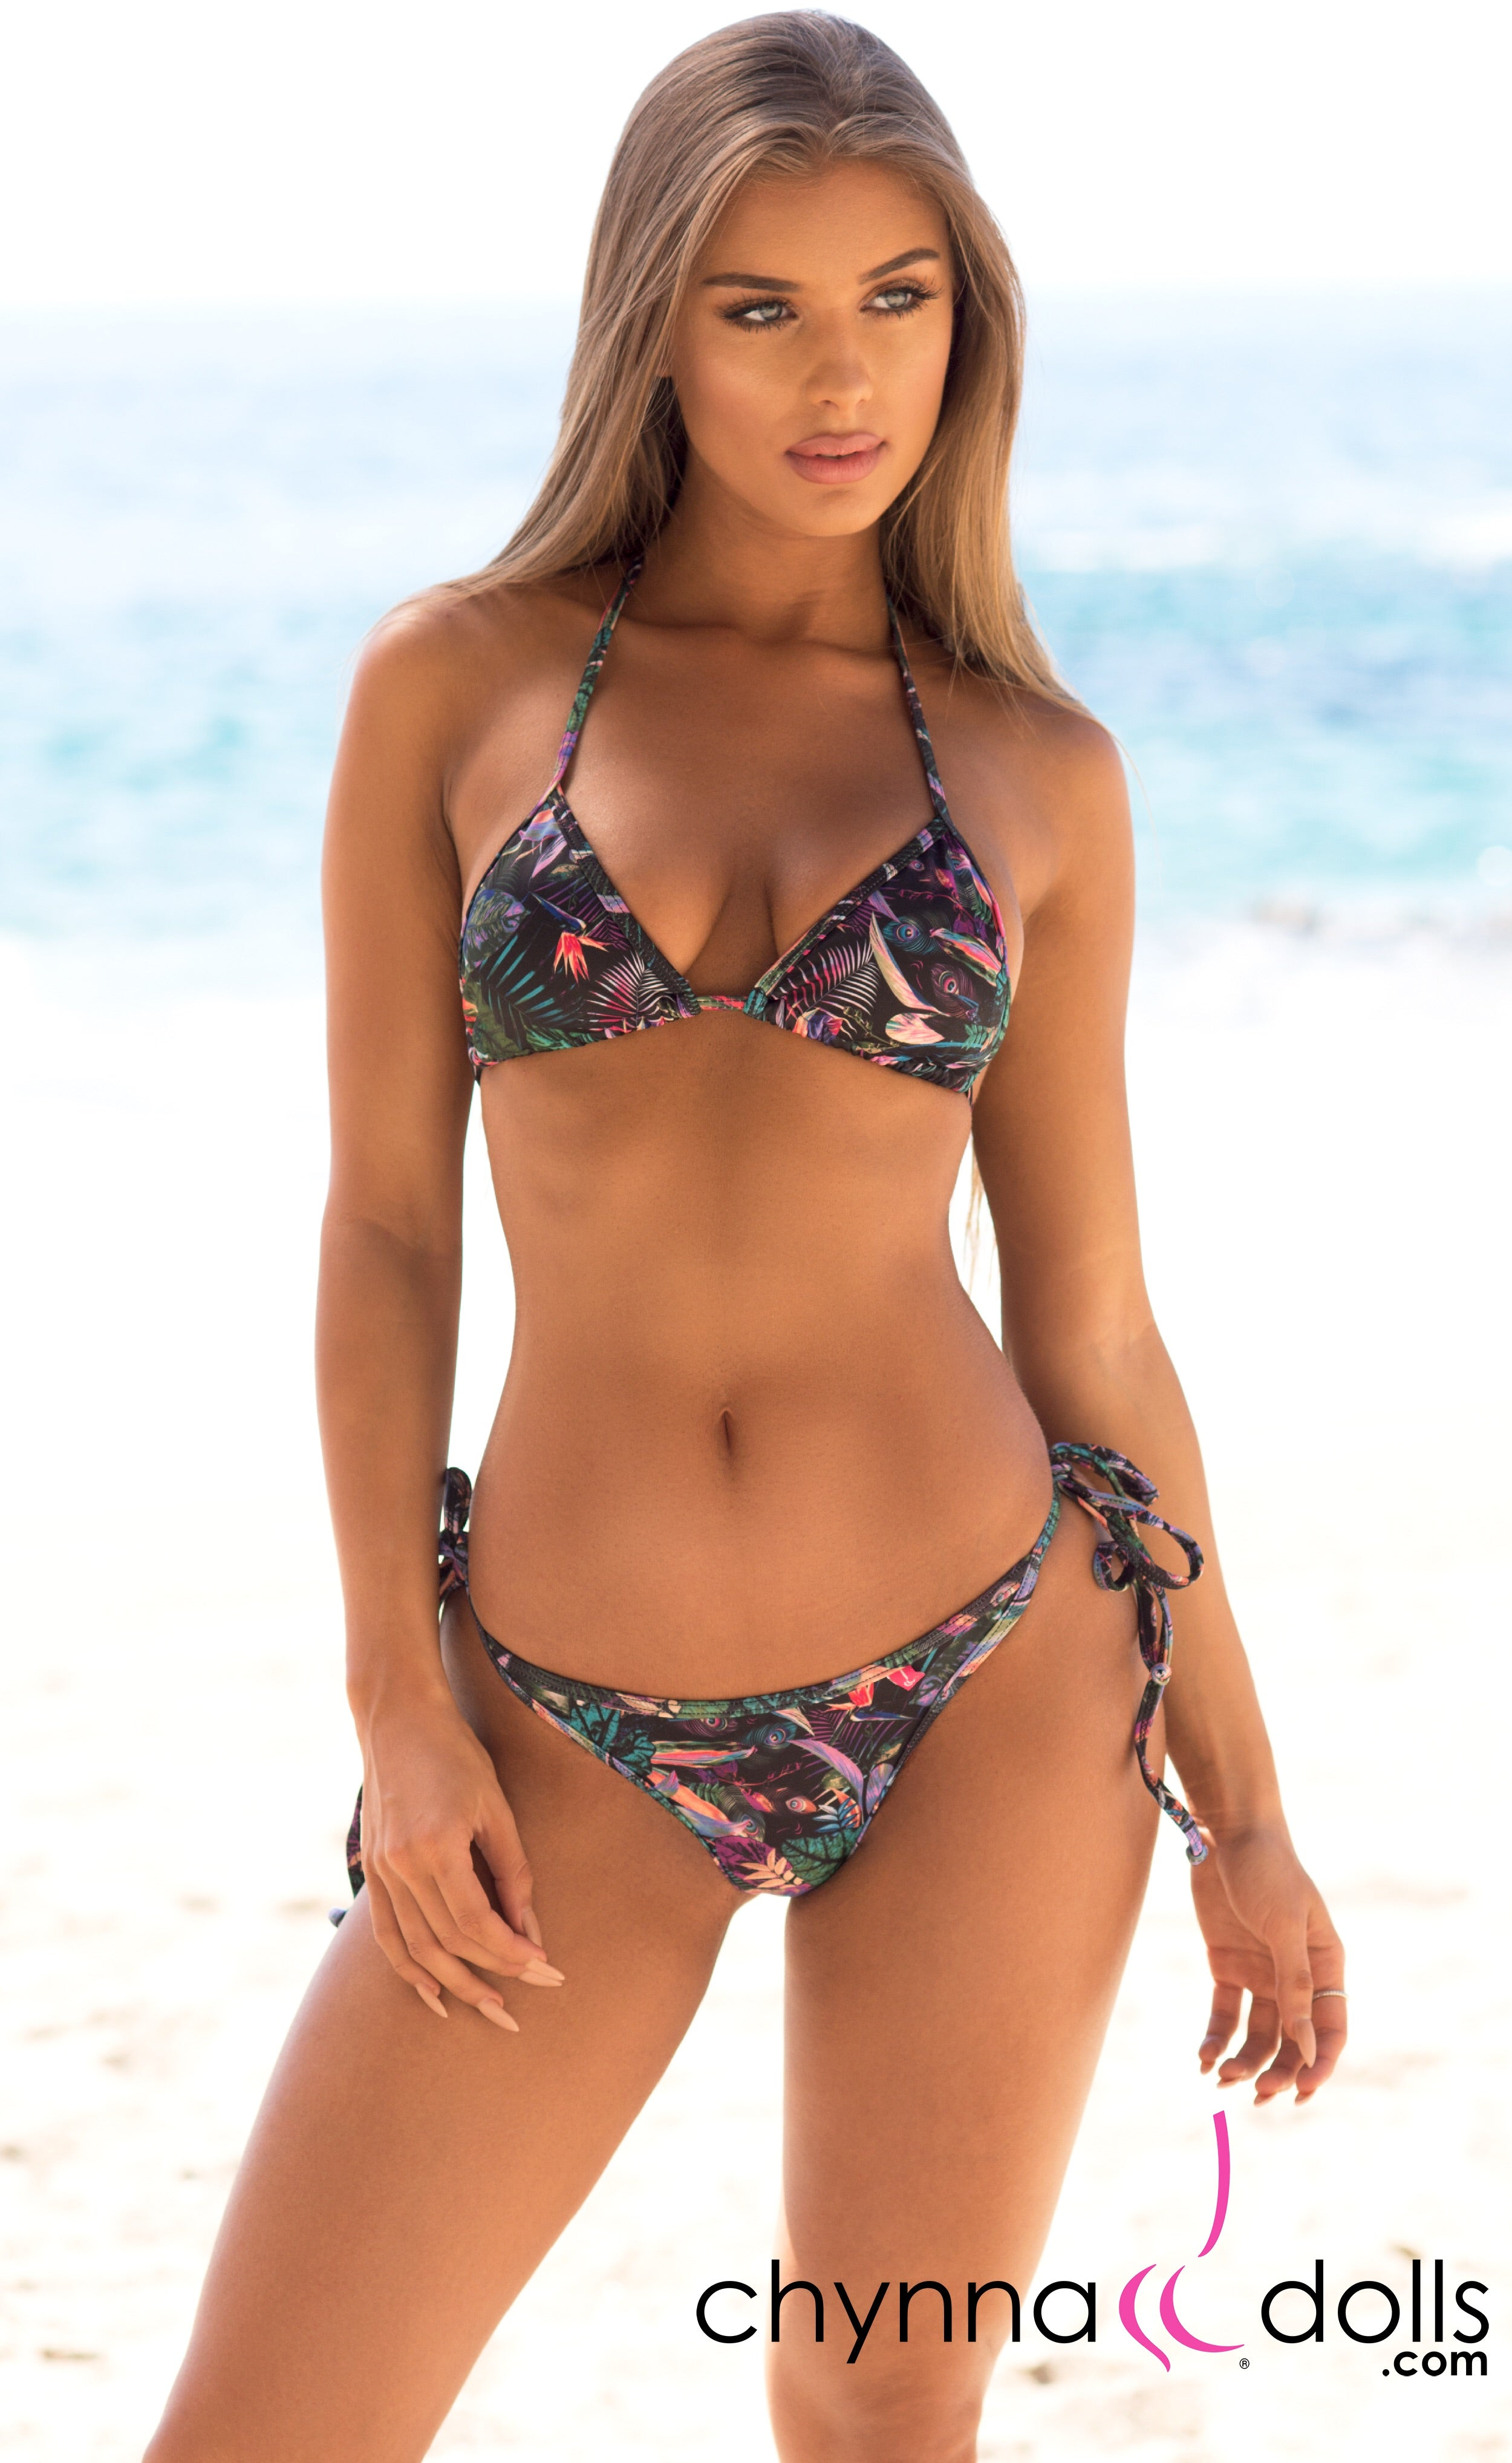 Laguna: String Bathing Suit in Chynna Dolls Exclusive Black Tropical Print